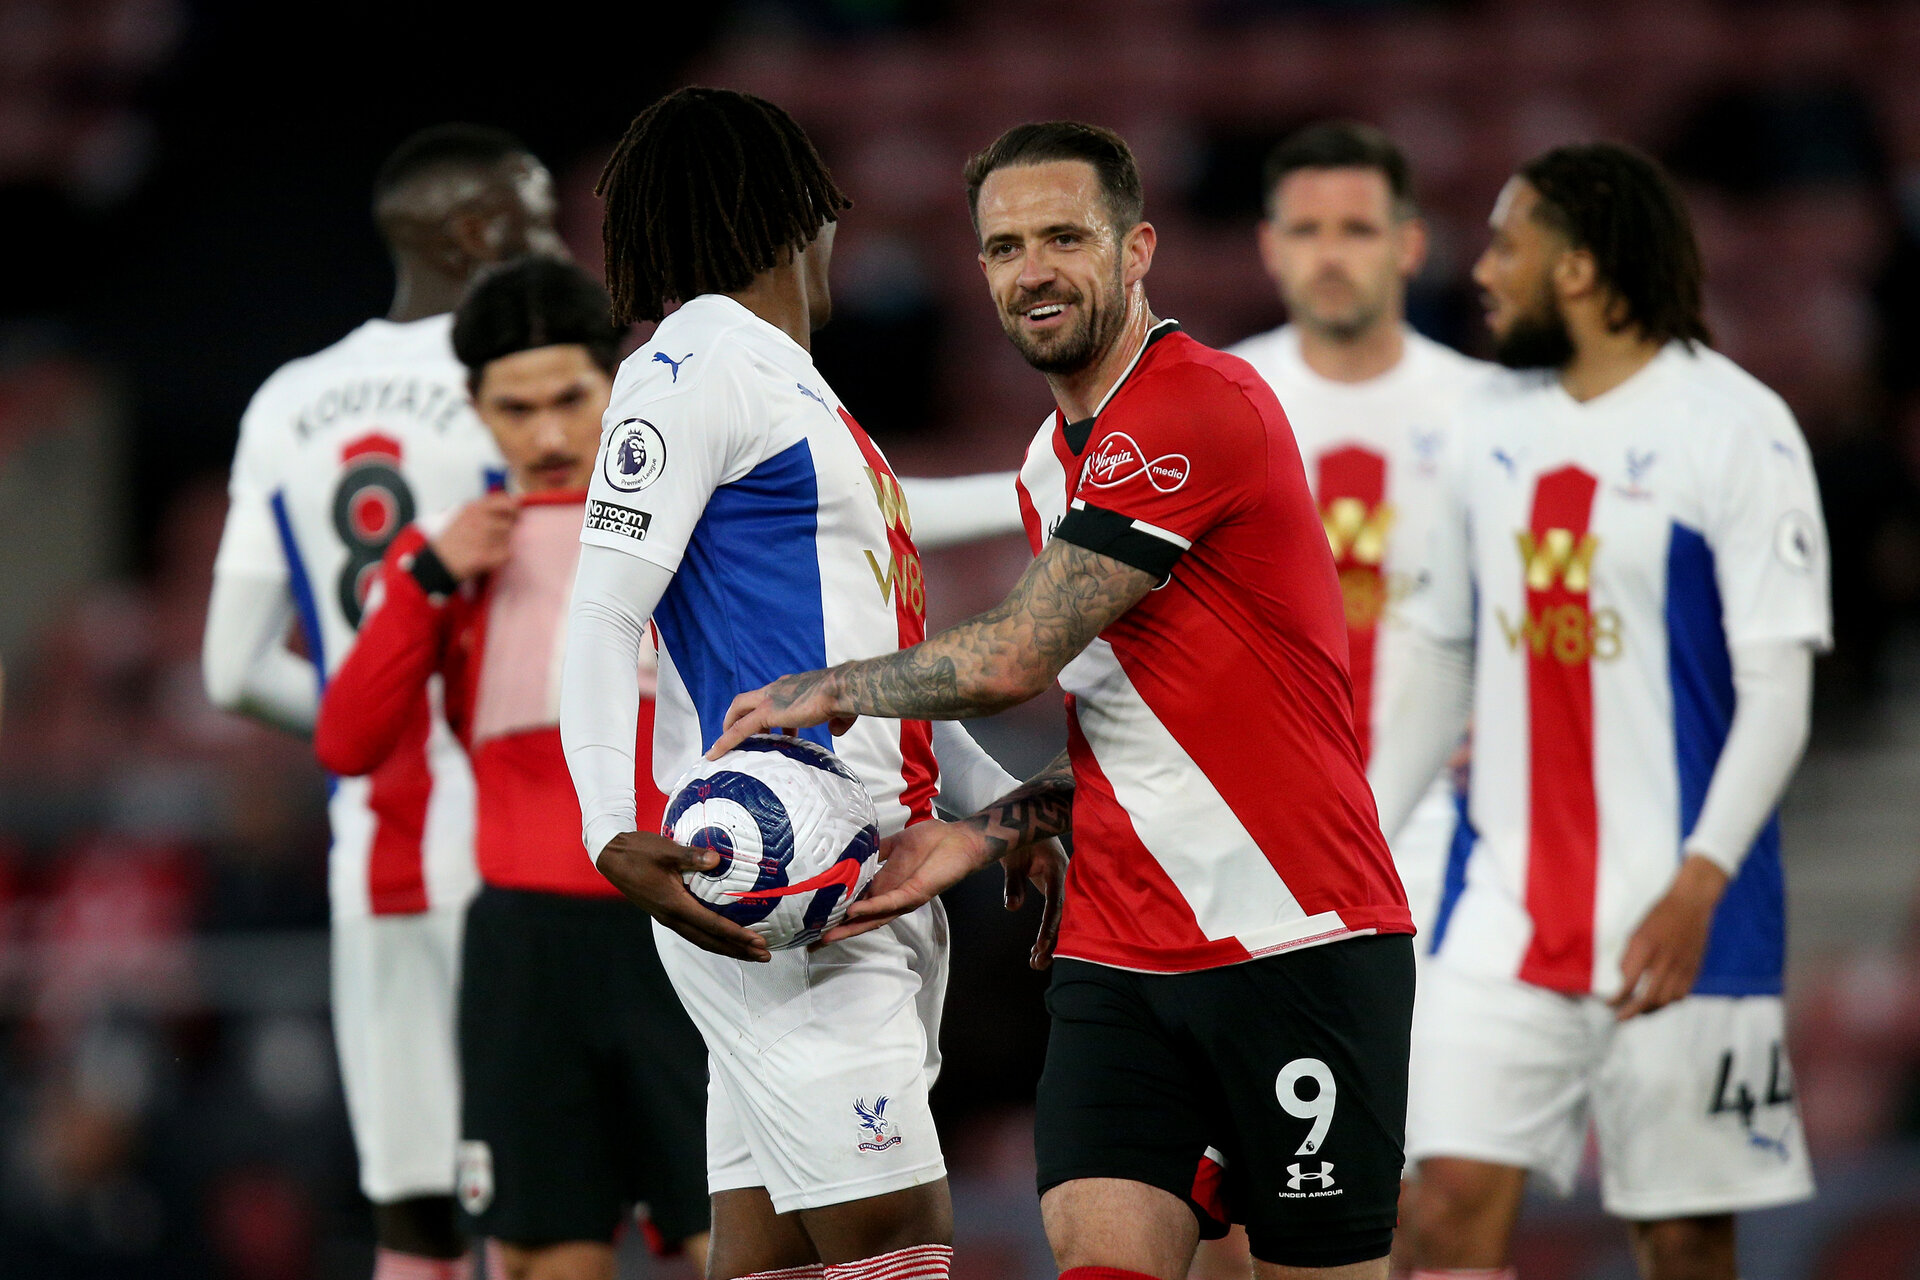 SOUTHAMPTON, ENGLAND - MAY 11: Danny Ings (R) of Southampton during the Premier League match between Southampton and Crystal Palace at St Mary's Stadium on May 11, 2021 in Southampton, England. Sporting stadiums around the UK remain under strict restrictions due to the Coronavirus Pandemic as Government social distancing laws prohibit fans inside venues resulting in games being played behind closed doors.  (Photo by Matt Watson/Southampton FC via Getty Images)